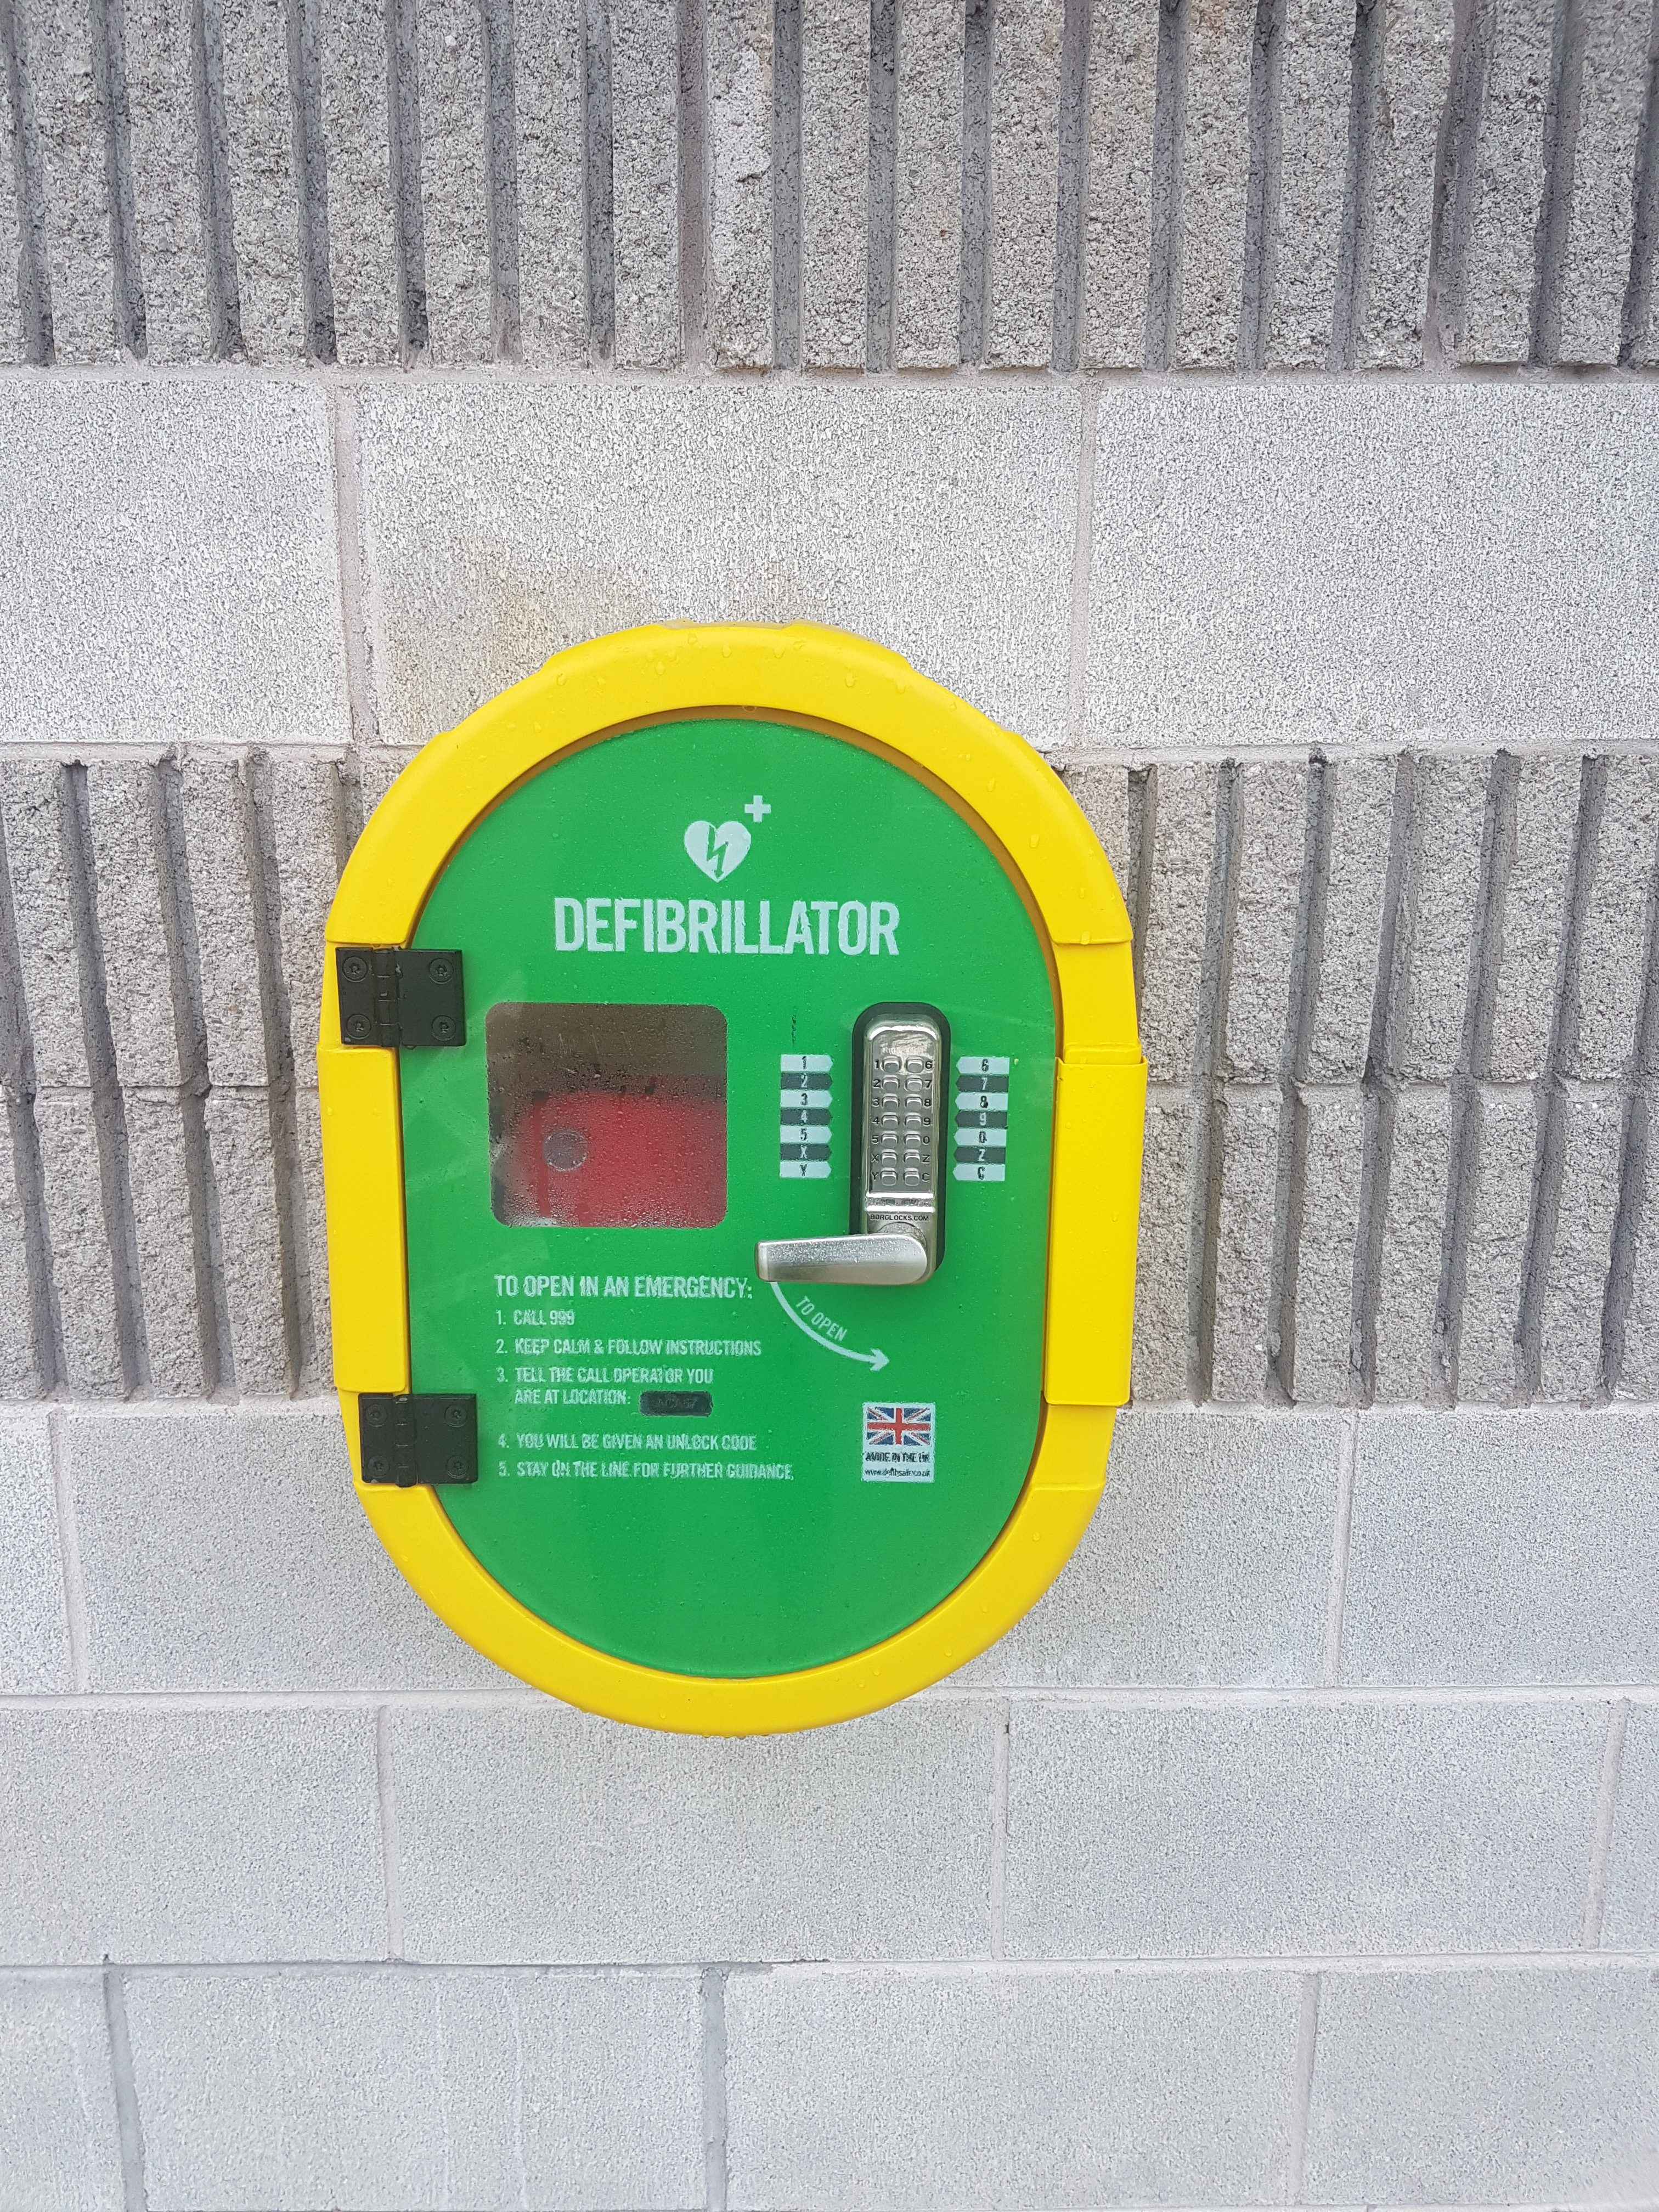 Link to New Defibrillator for Cookstown Enterprise Centre post